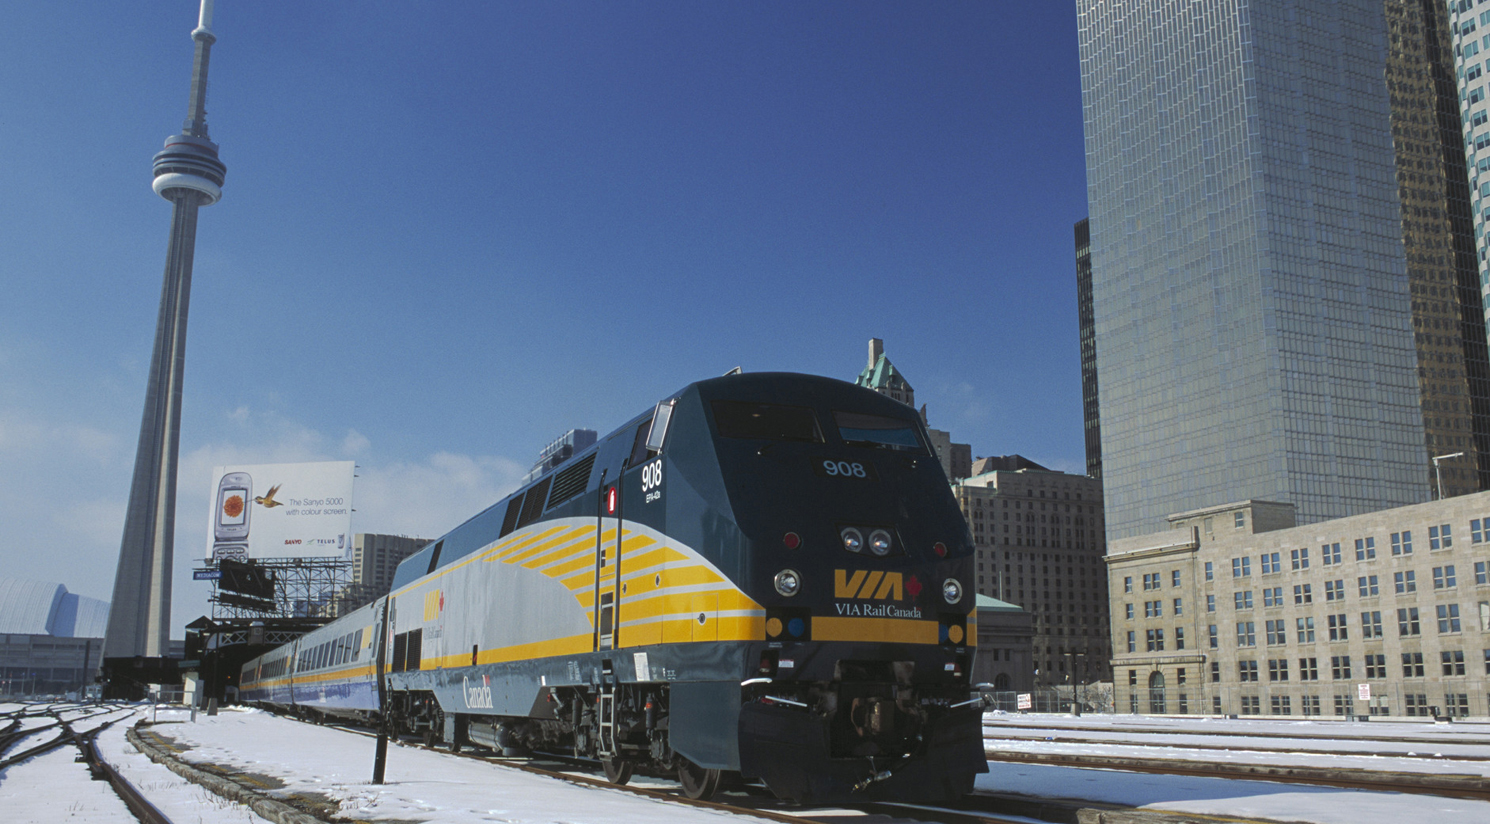 VIA Rail Windsor-Quebec HFR Project: Ridership Forecasting and Planning Study